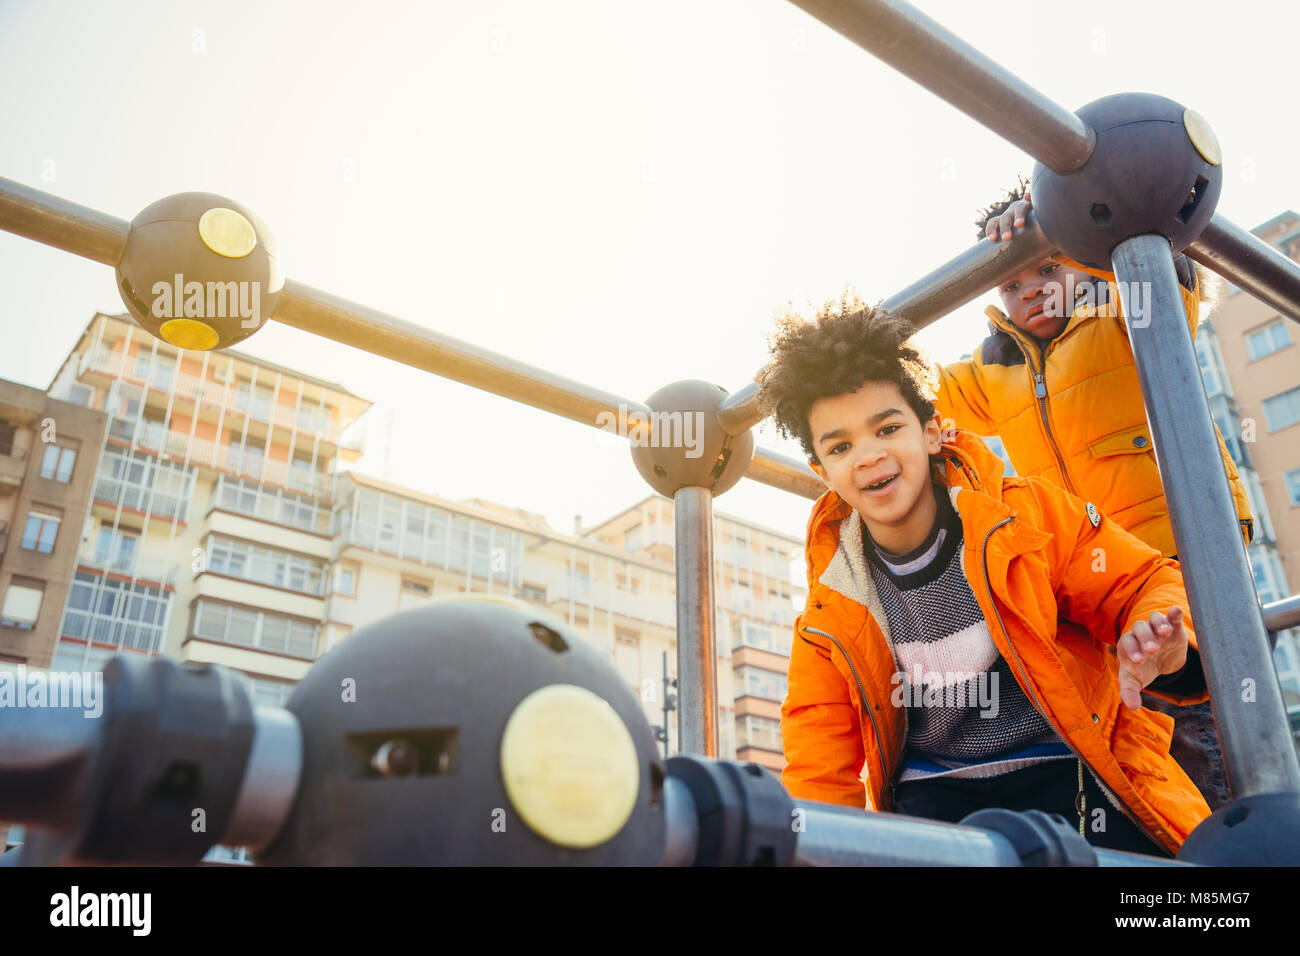 Happy children climbing in a urban playground construction in a sunny day - Stock Image